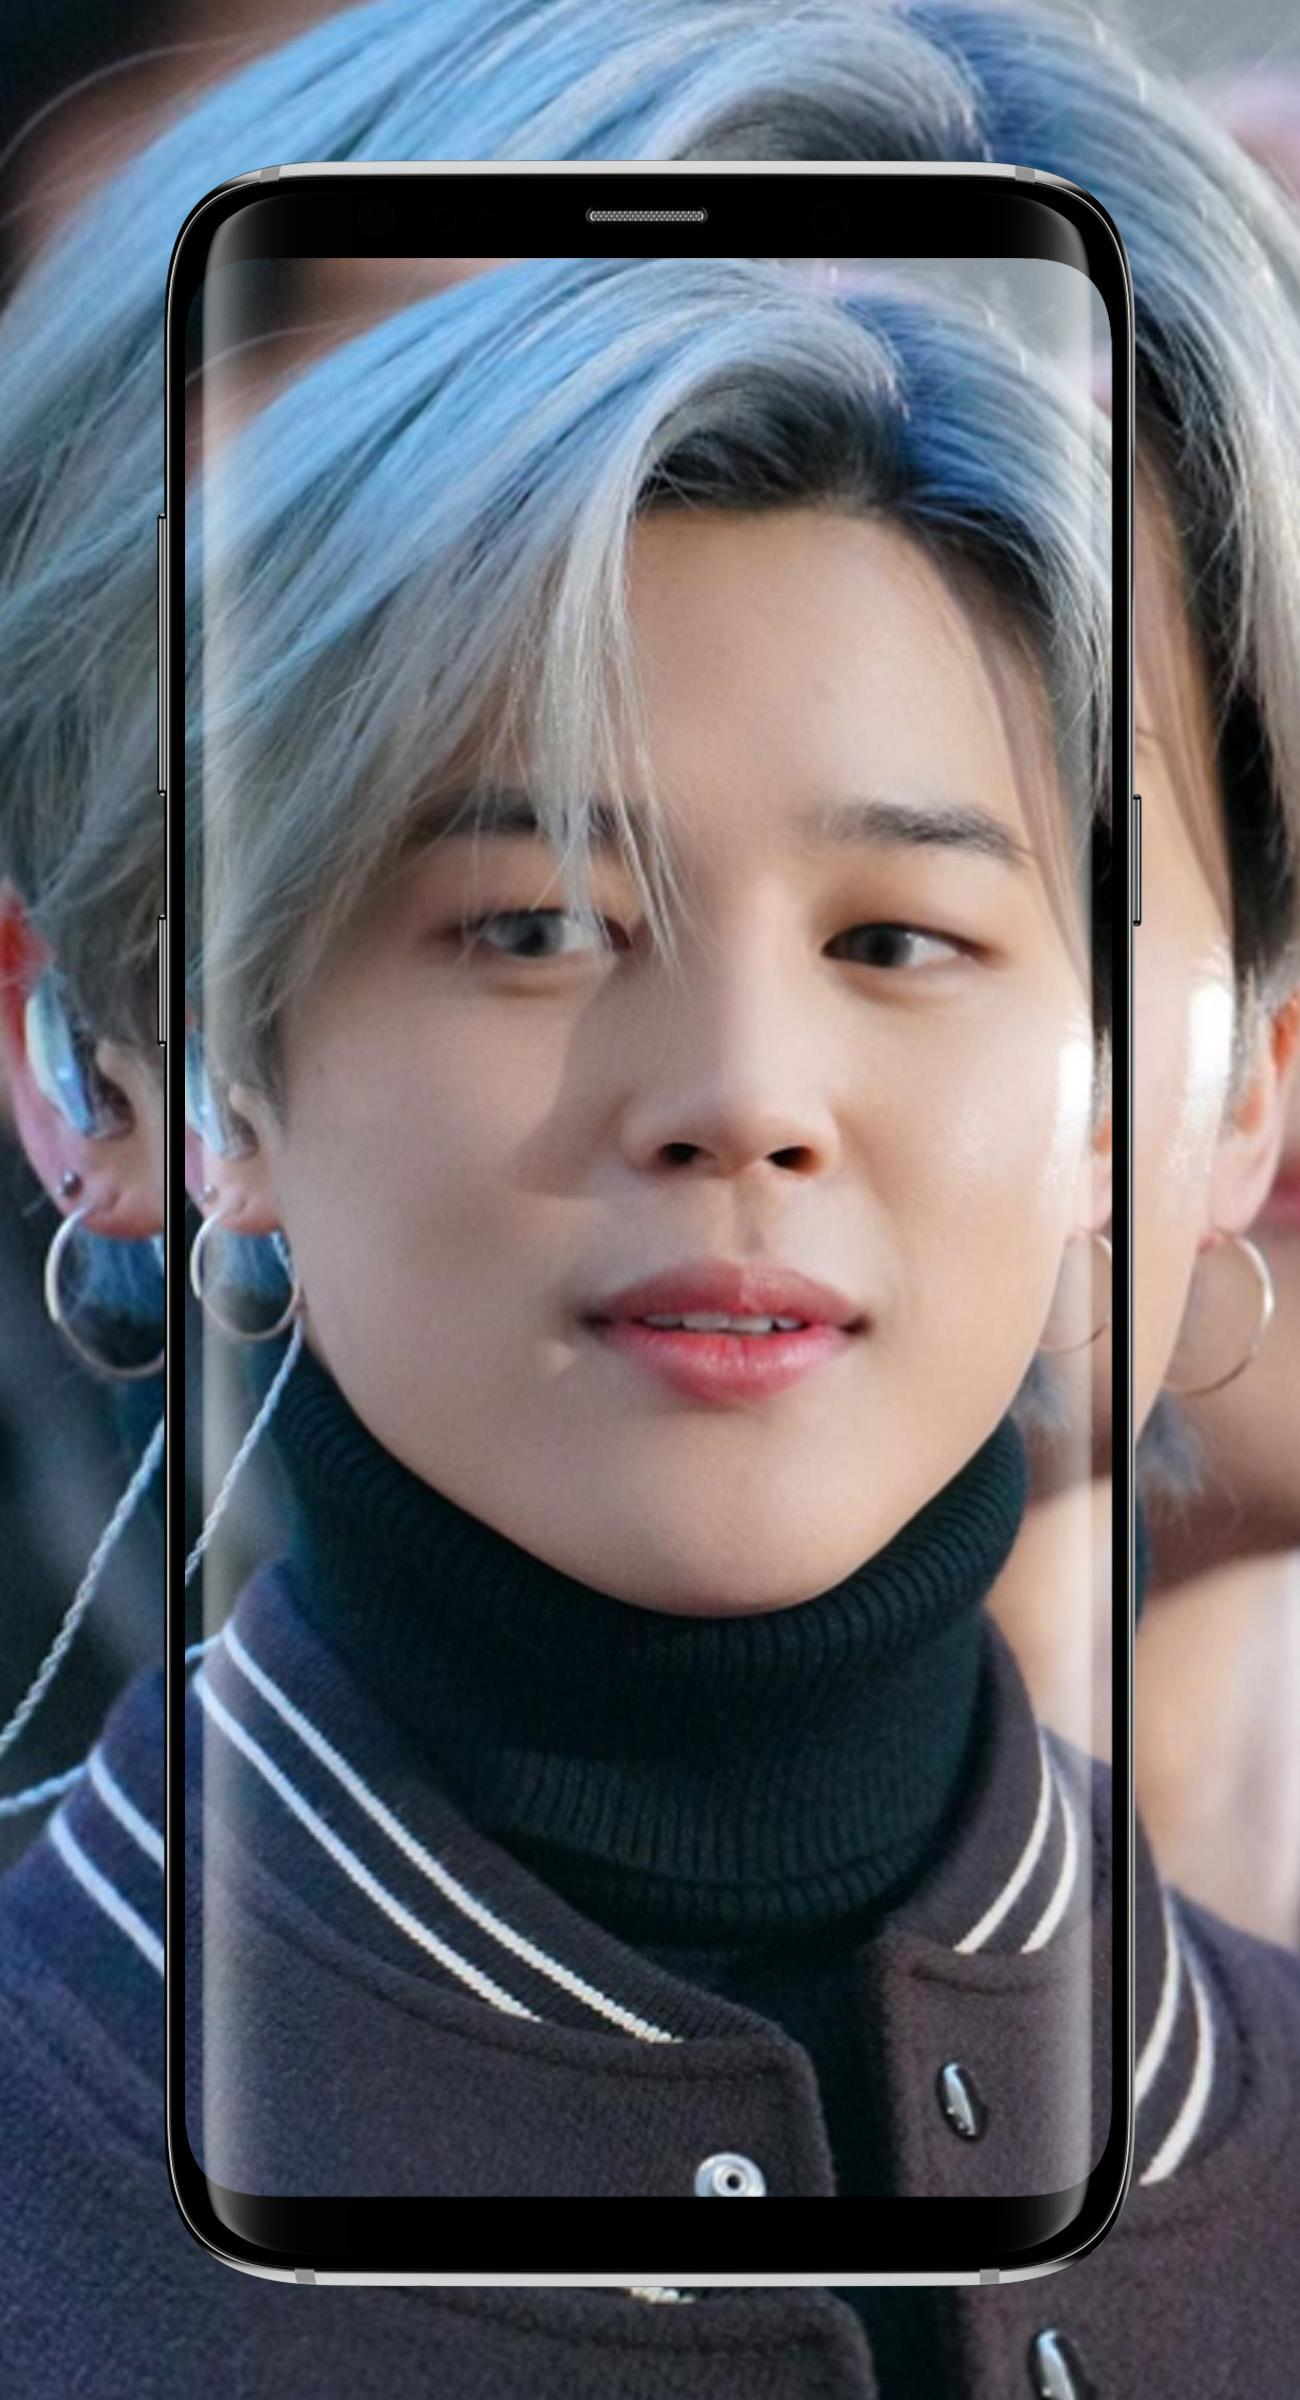 Park Jimin Bts 2020 Wallpaper Untuk Jimin Bts Hd For Android Apk Download